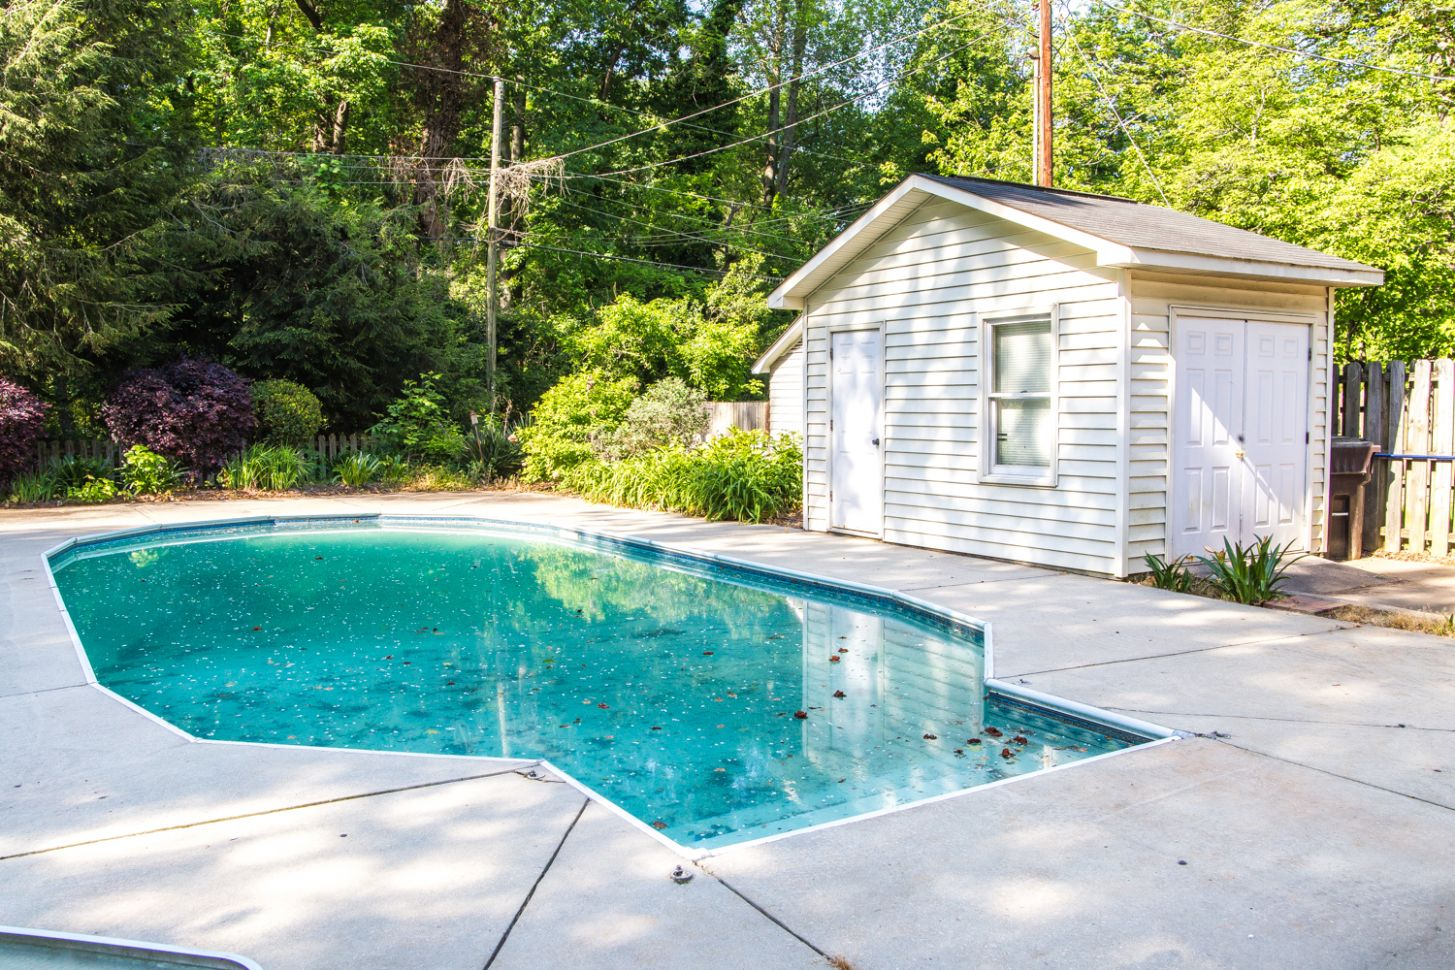 Backyard Before Tour and Pool Makeover Plans - Bless'er House